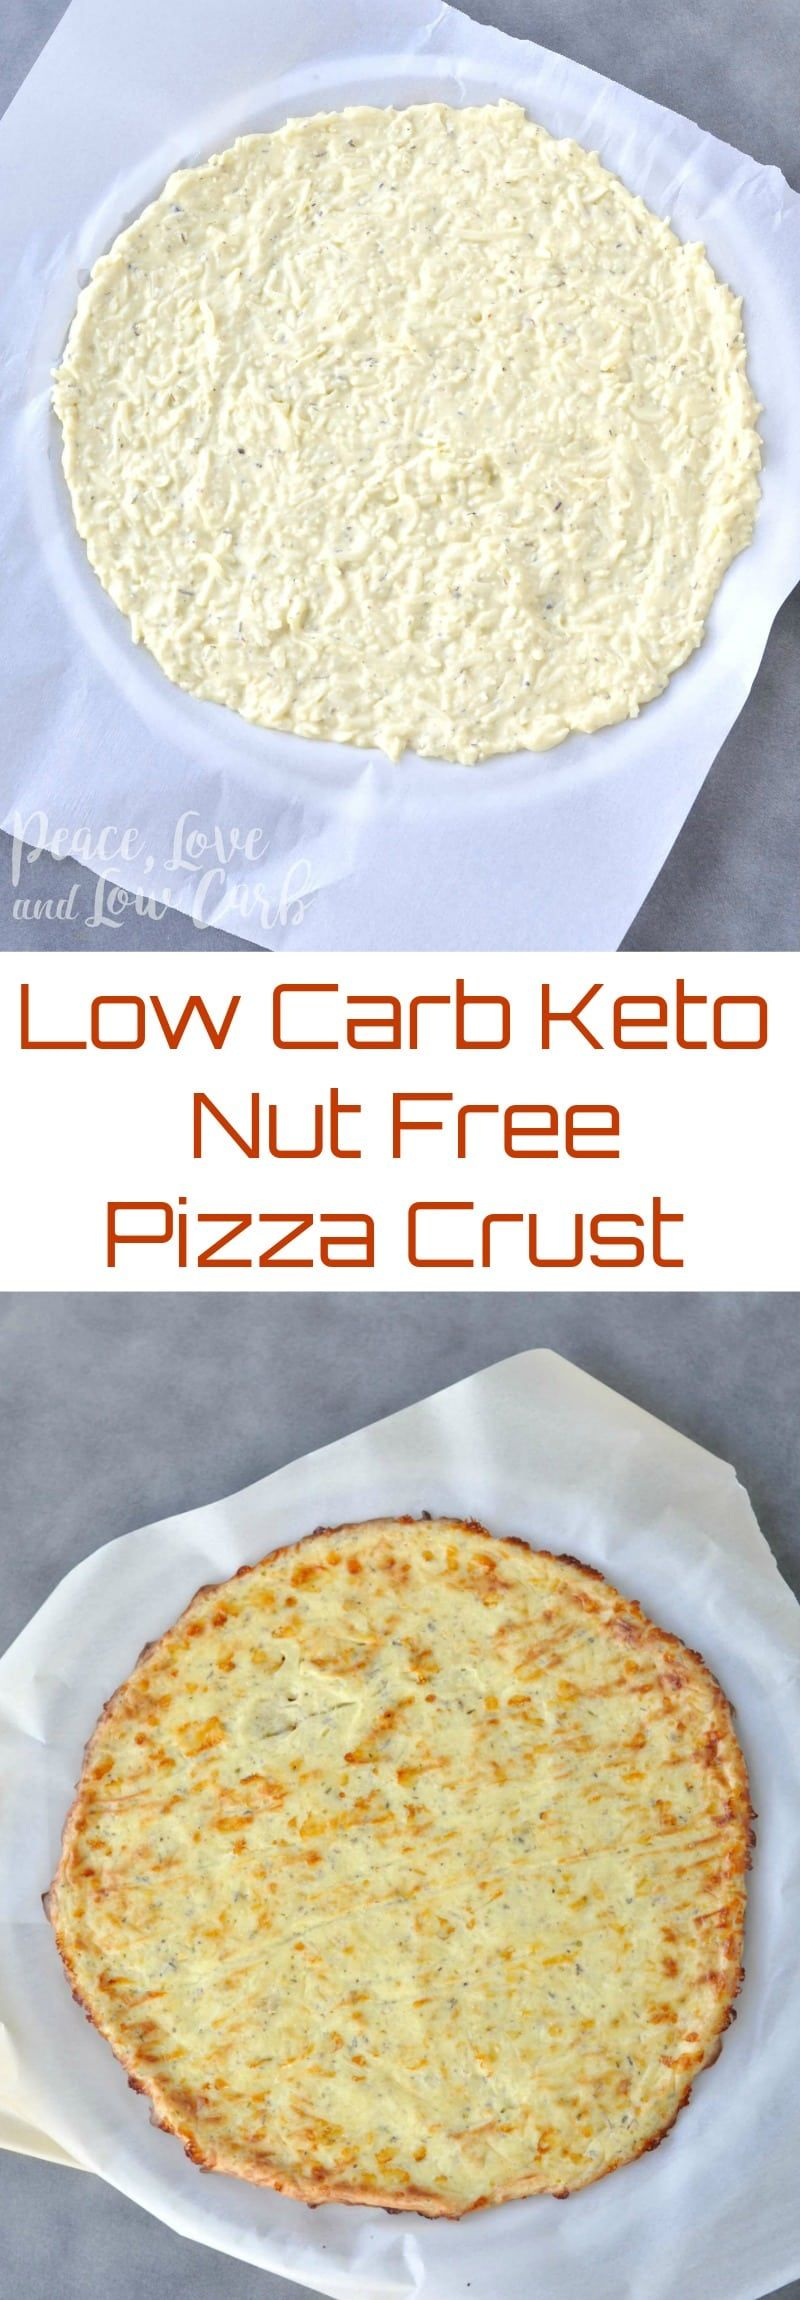 Low Carb Keto Nut Free Pizza Crust #lowcarbrecipes